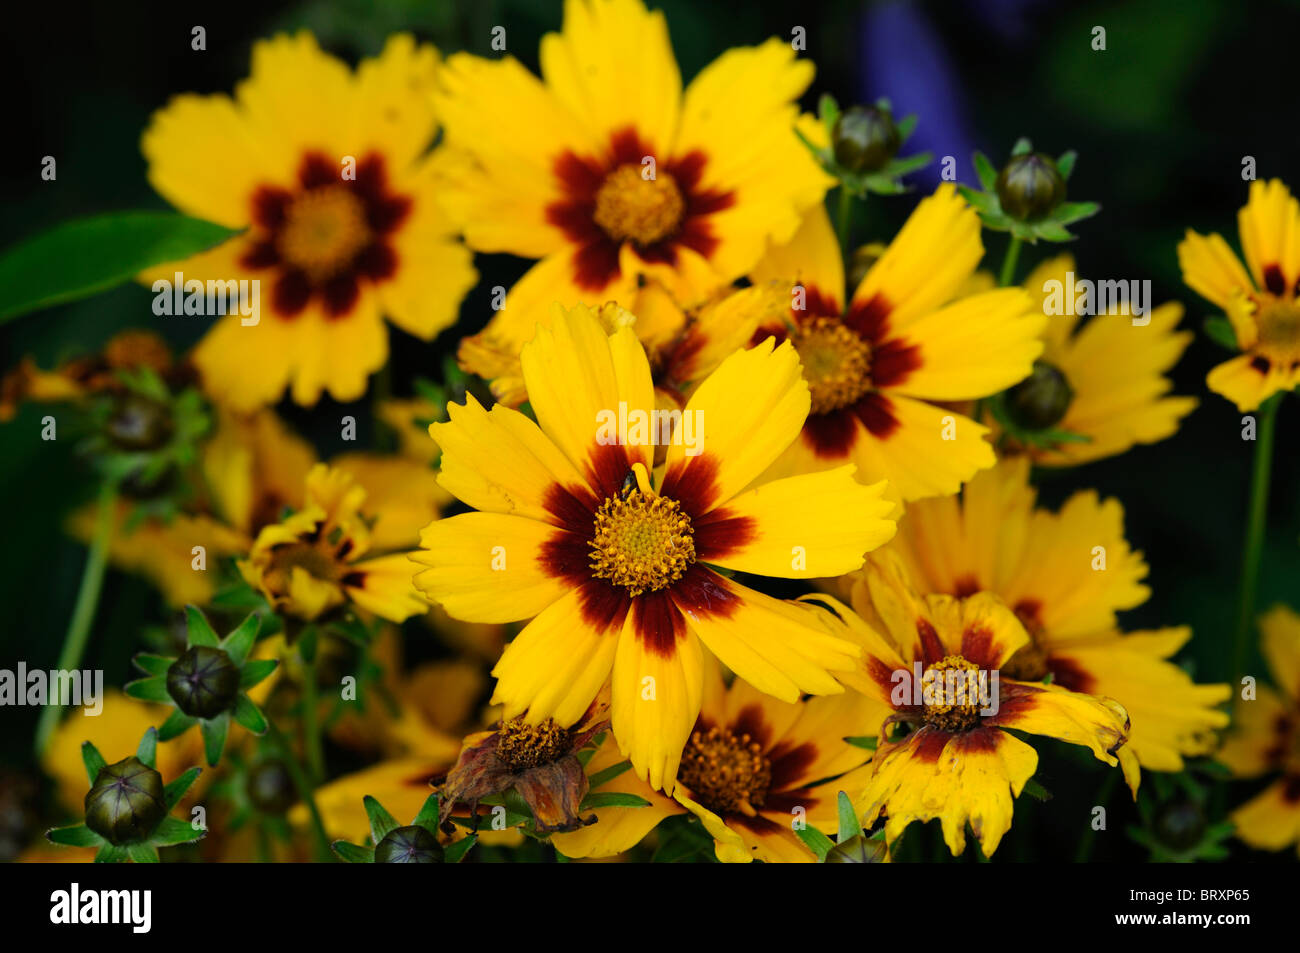 Yellow red centre stock photos yellow red centre stock images alamy coreopsis grandiflora helios golden yellow flowers mahogany red centre perennial flower bloom profuse stock image mightylinksfo